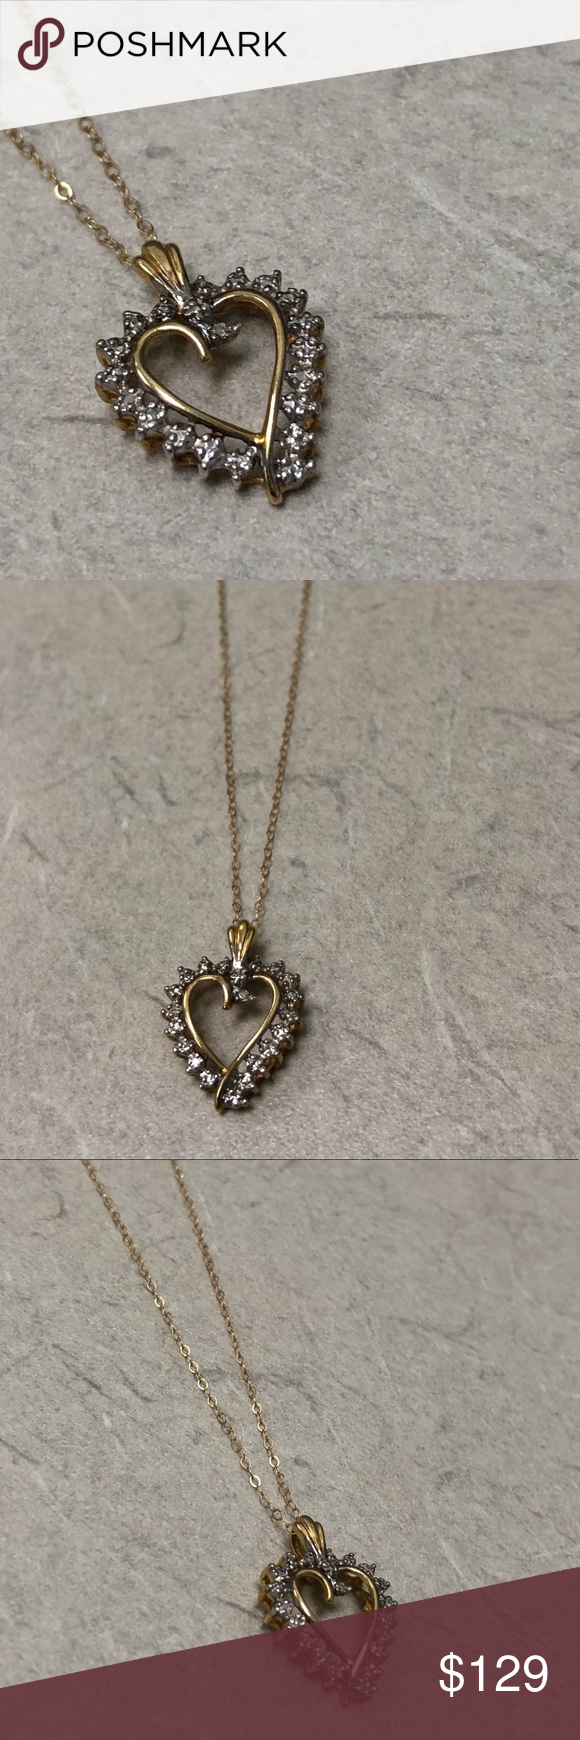 10k Jcm Heart Pendant Necklace Chain Heart Pendant Necklace Chains Necklace Pendant Necklace